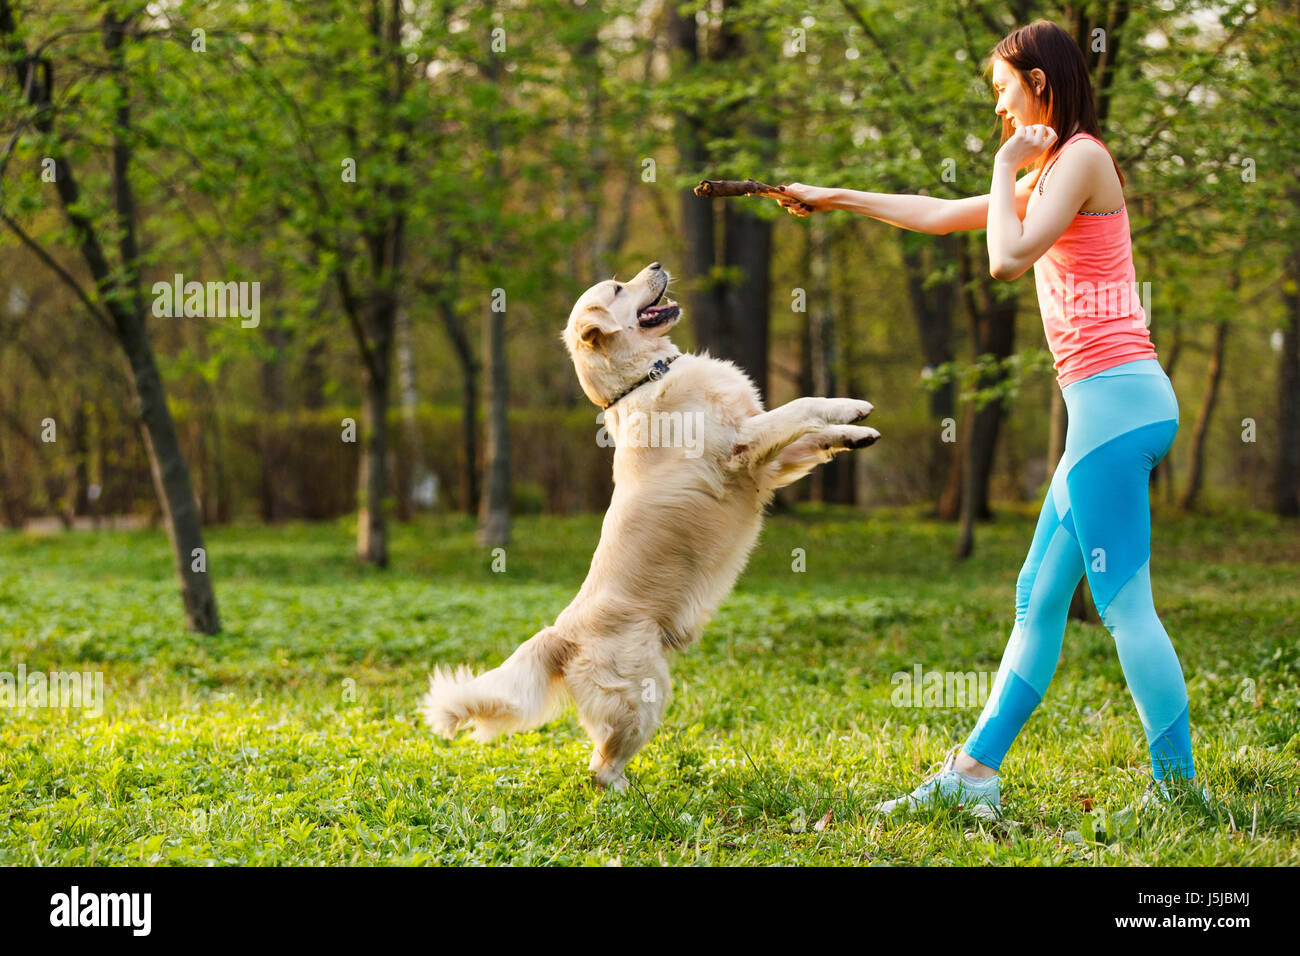 Sporty woman playing with dog - Stock Image